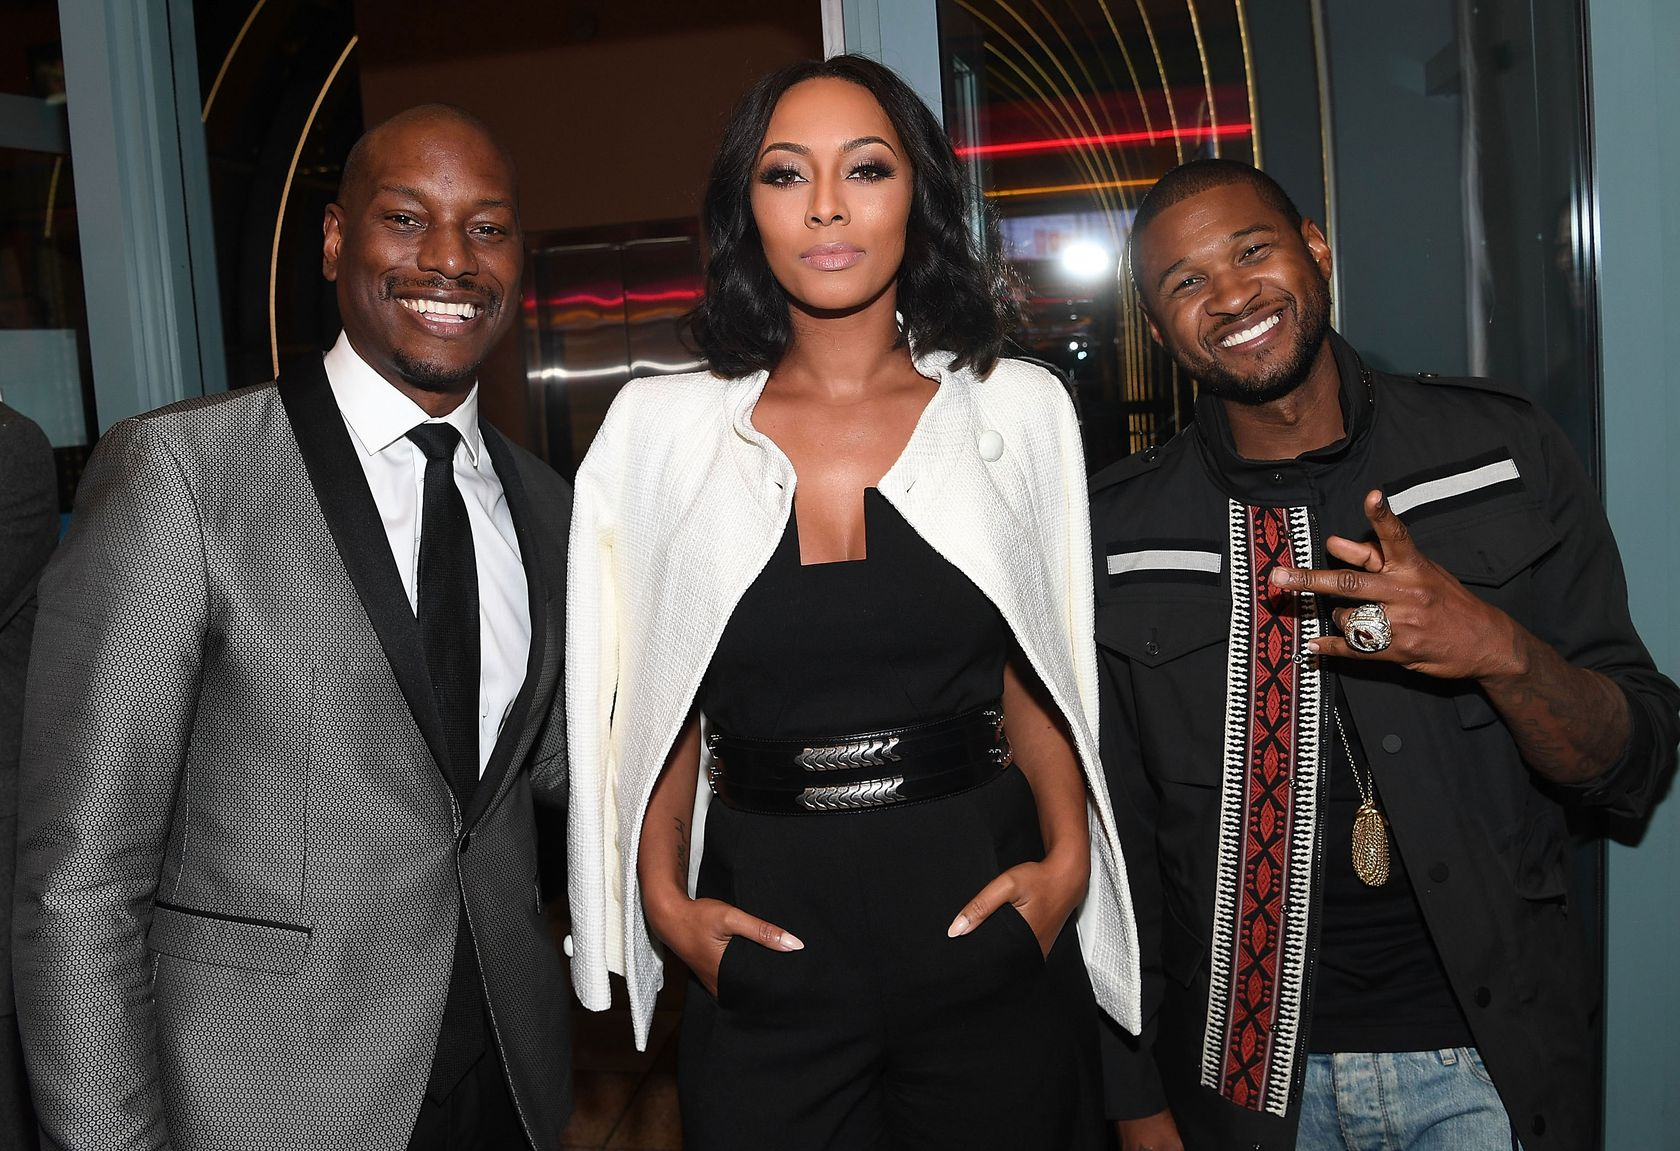 Tyrese, Keri Hilson, Usher - Katy Perry and Hari Nef Partied This ...